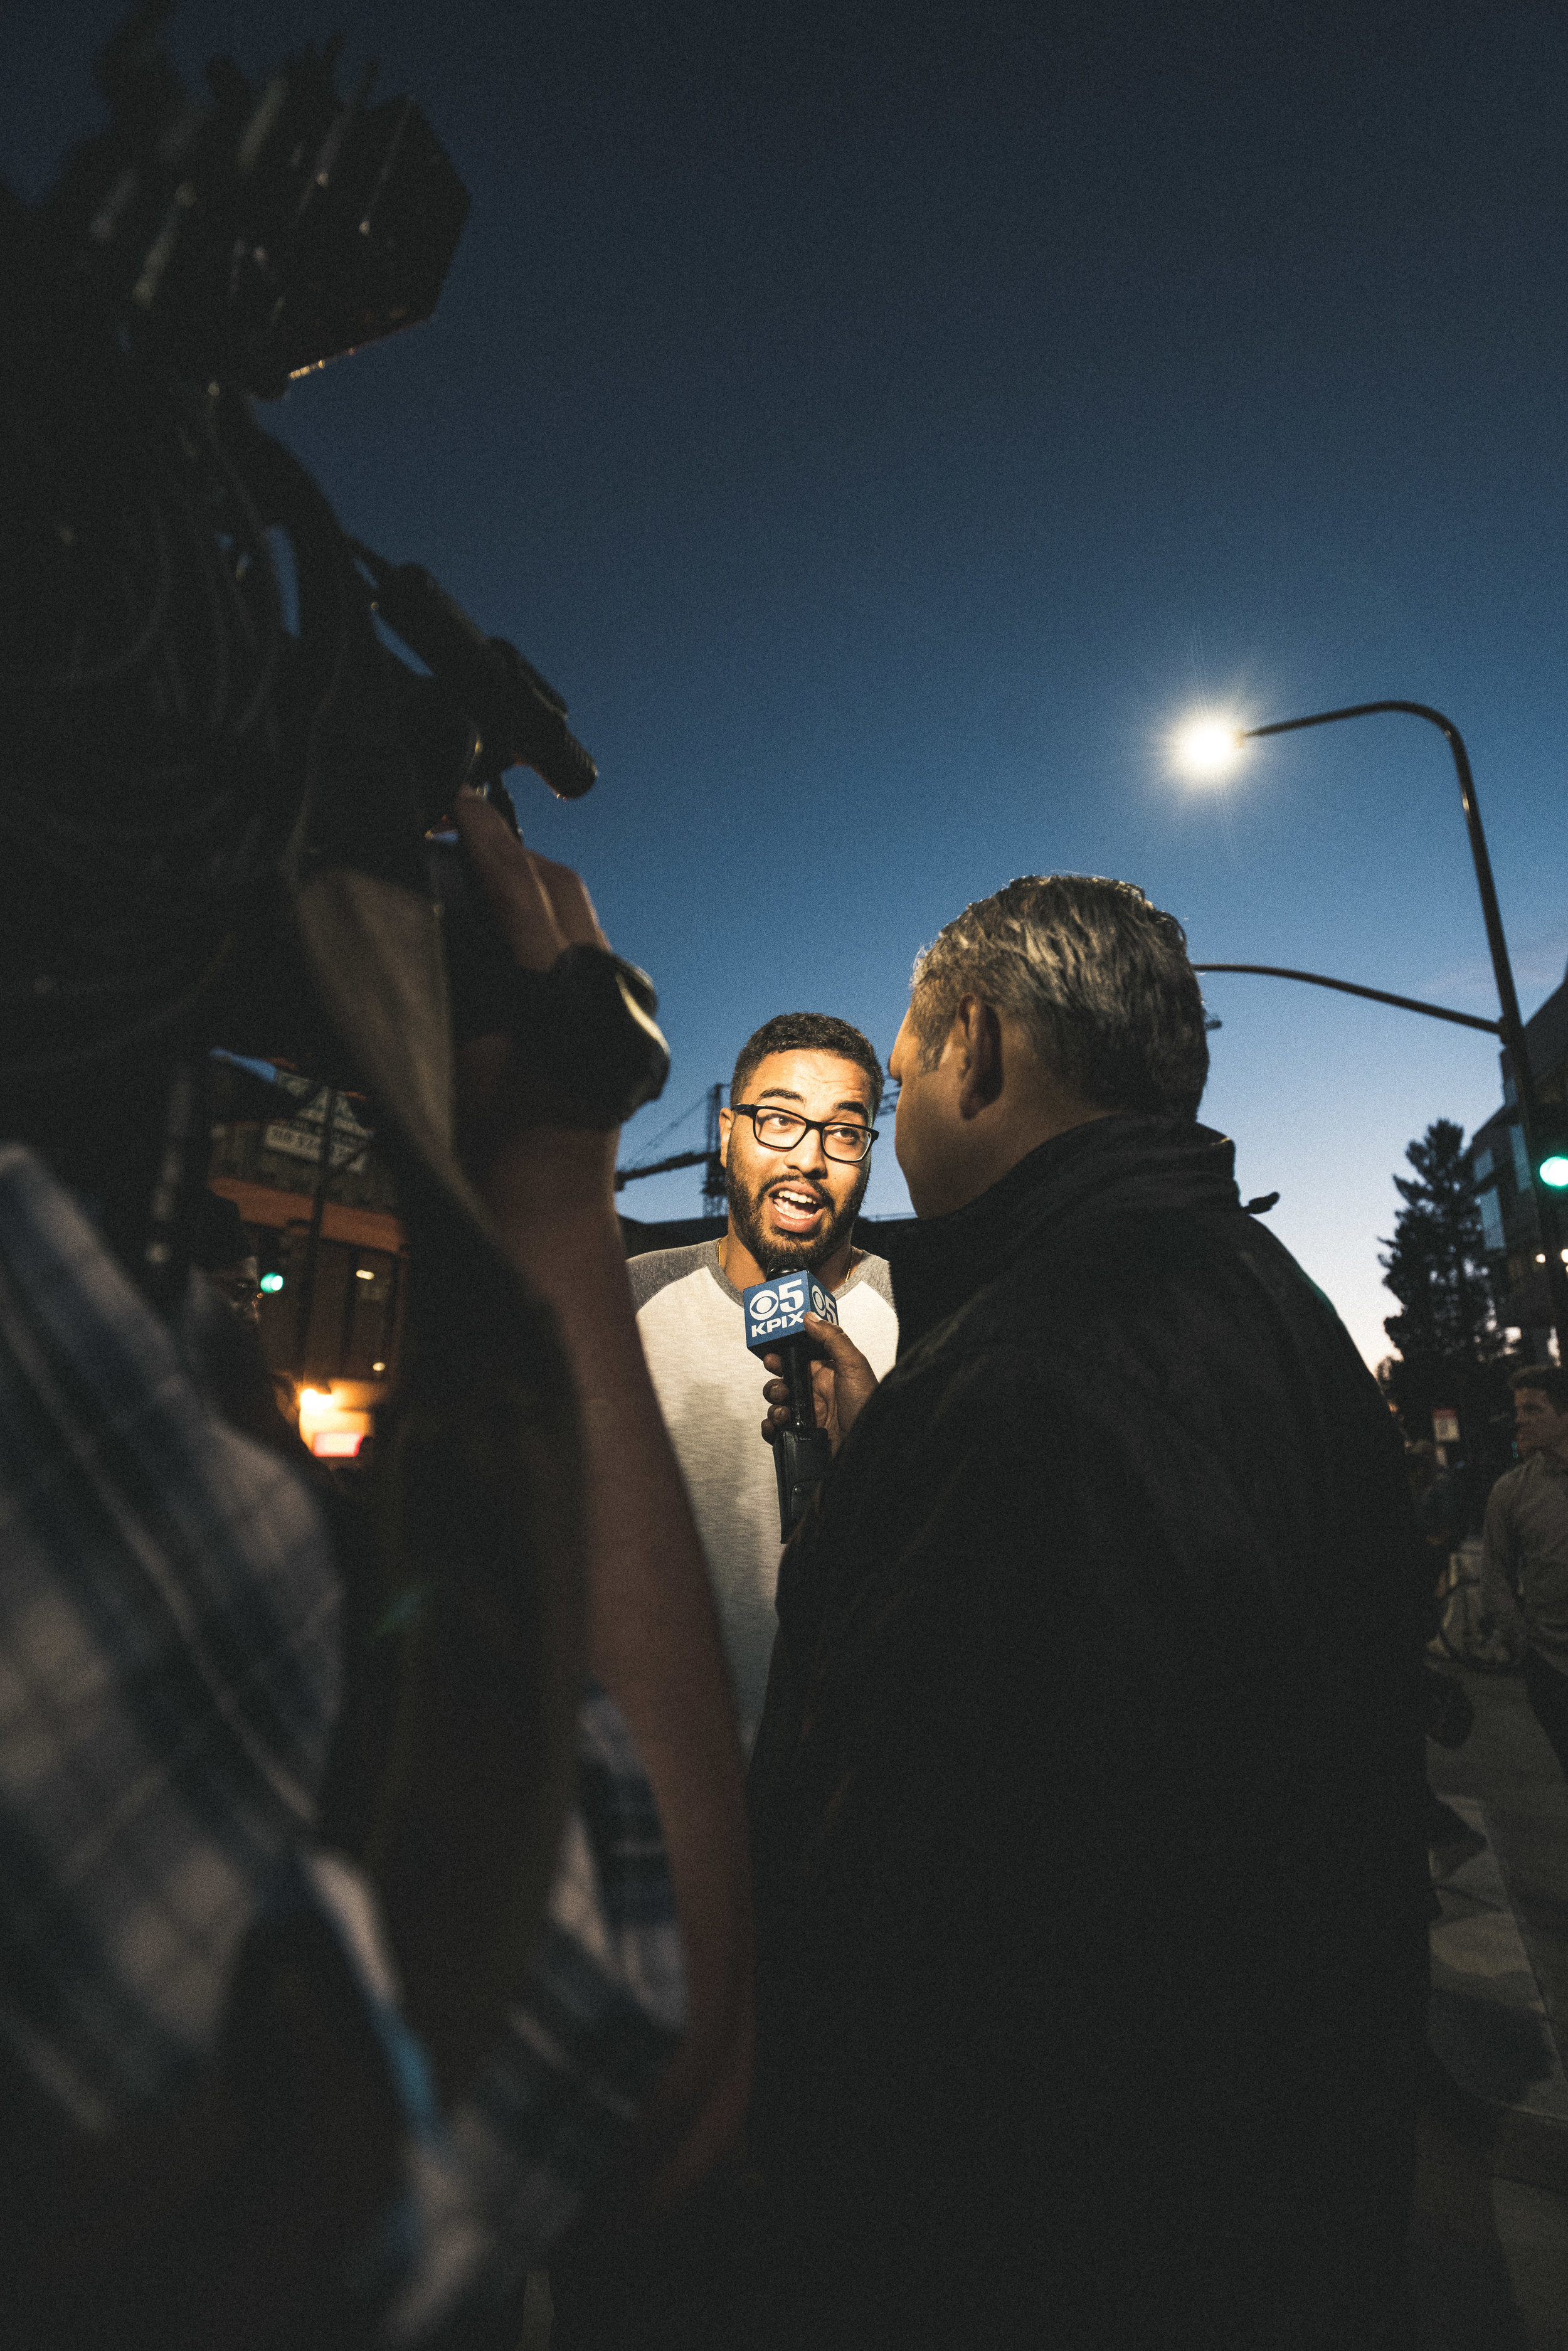 A bystander is interviewed as tensions begin to grow. I later found him to be Muhammad Alameldin.